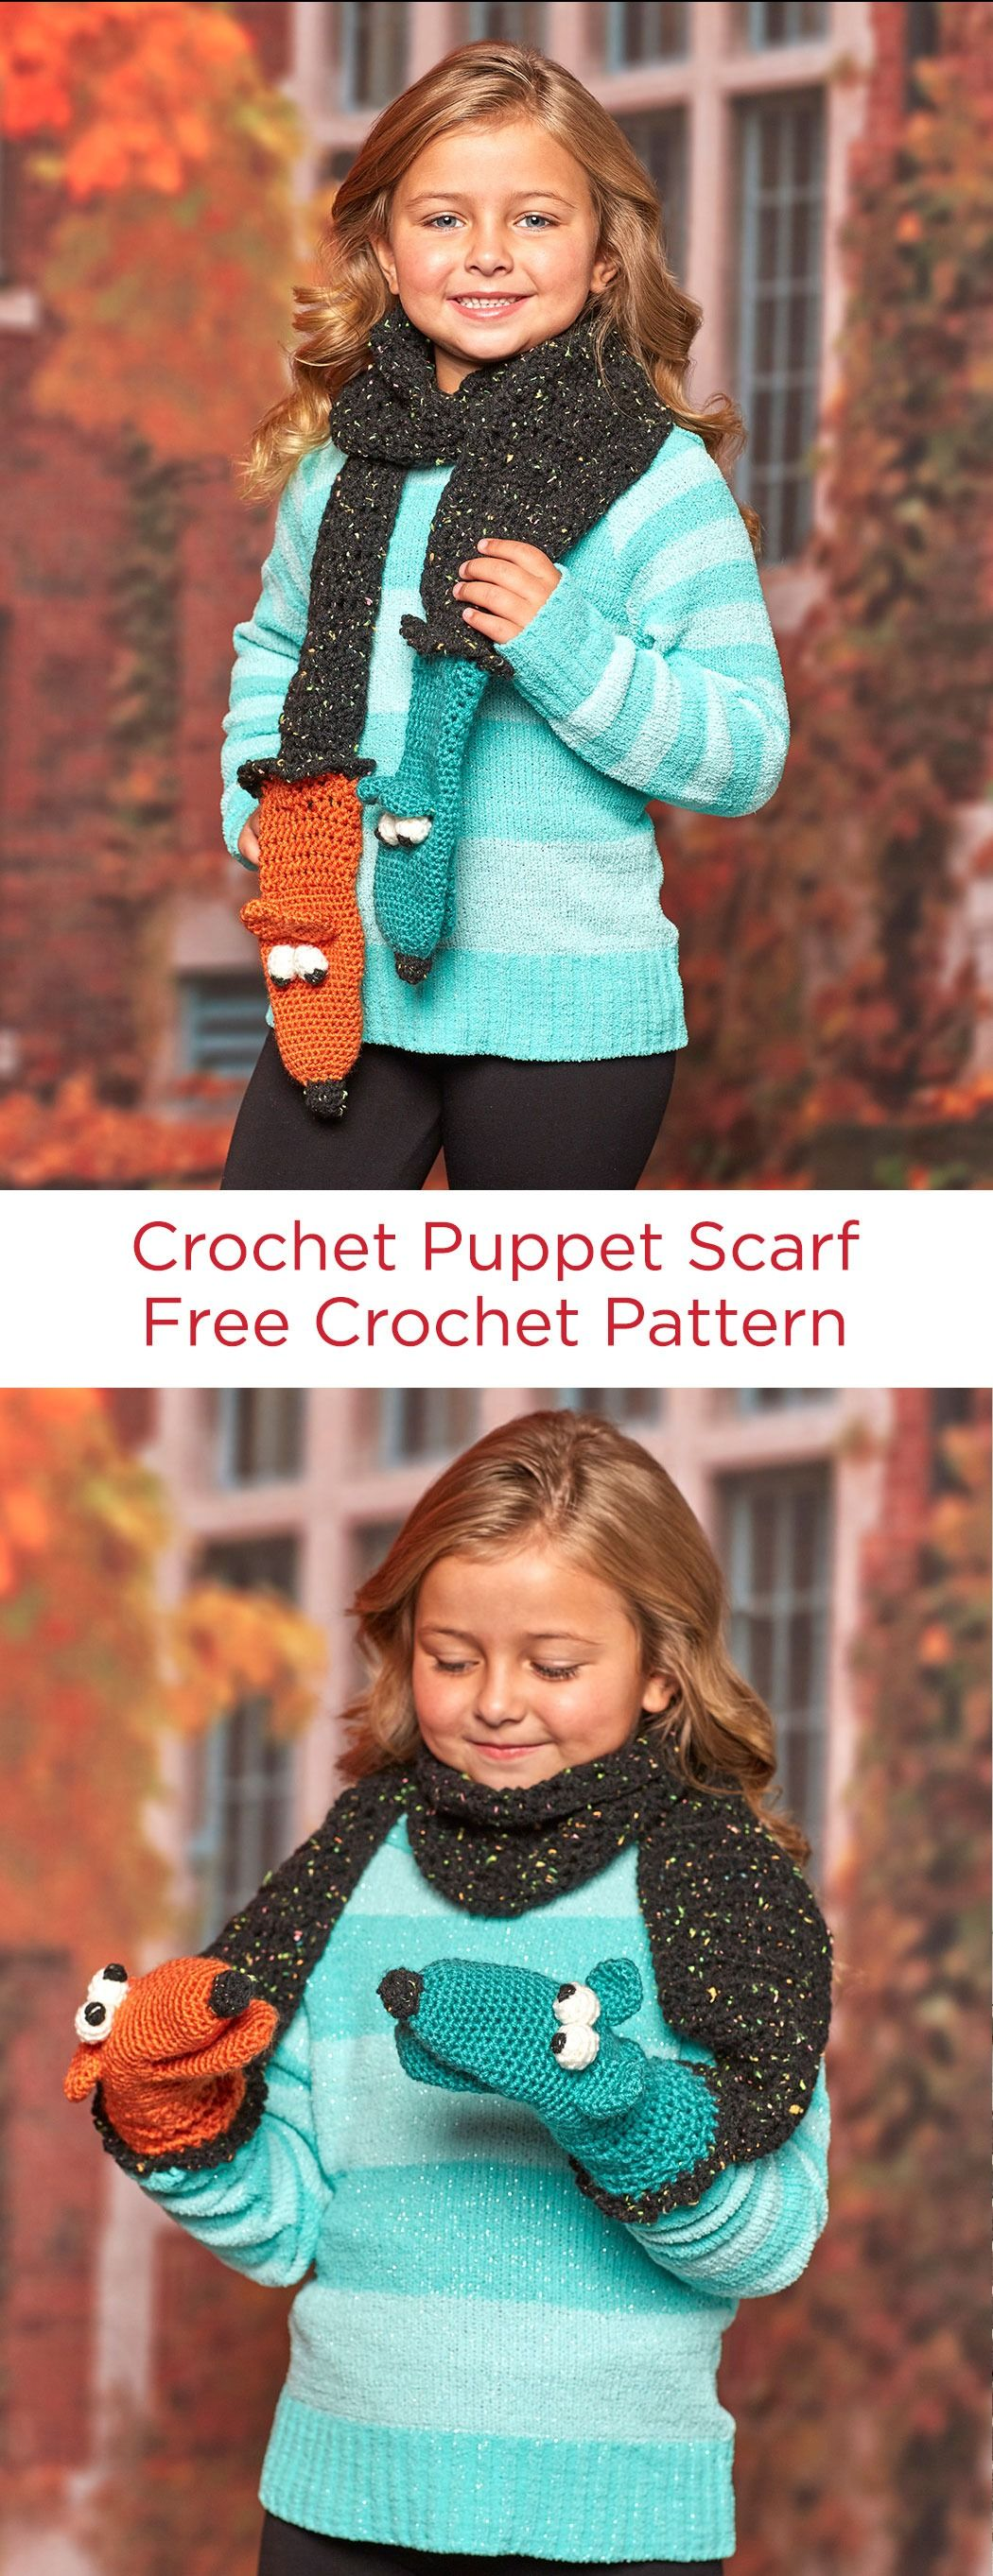 Crochet puppet scarf free crochet pattern in red heart yarns crochet puppet scarf free crochet pattern in red heart yarns this fun crochet accessory bankloansurffo Image collections